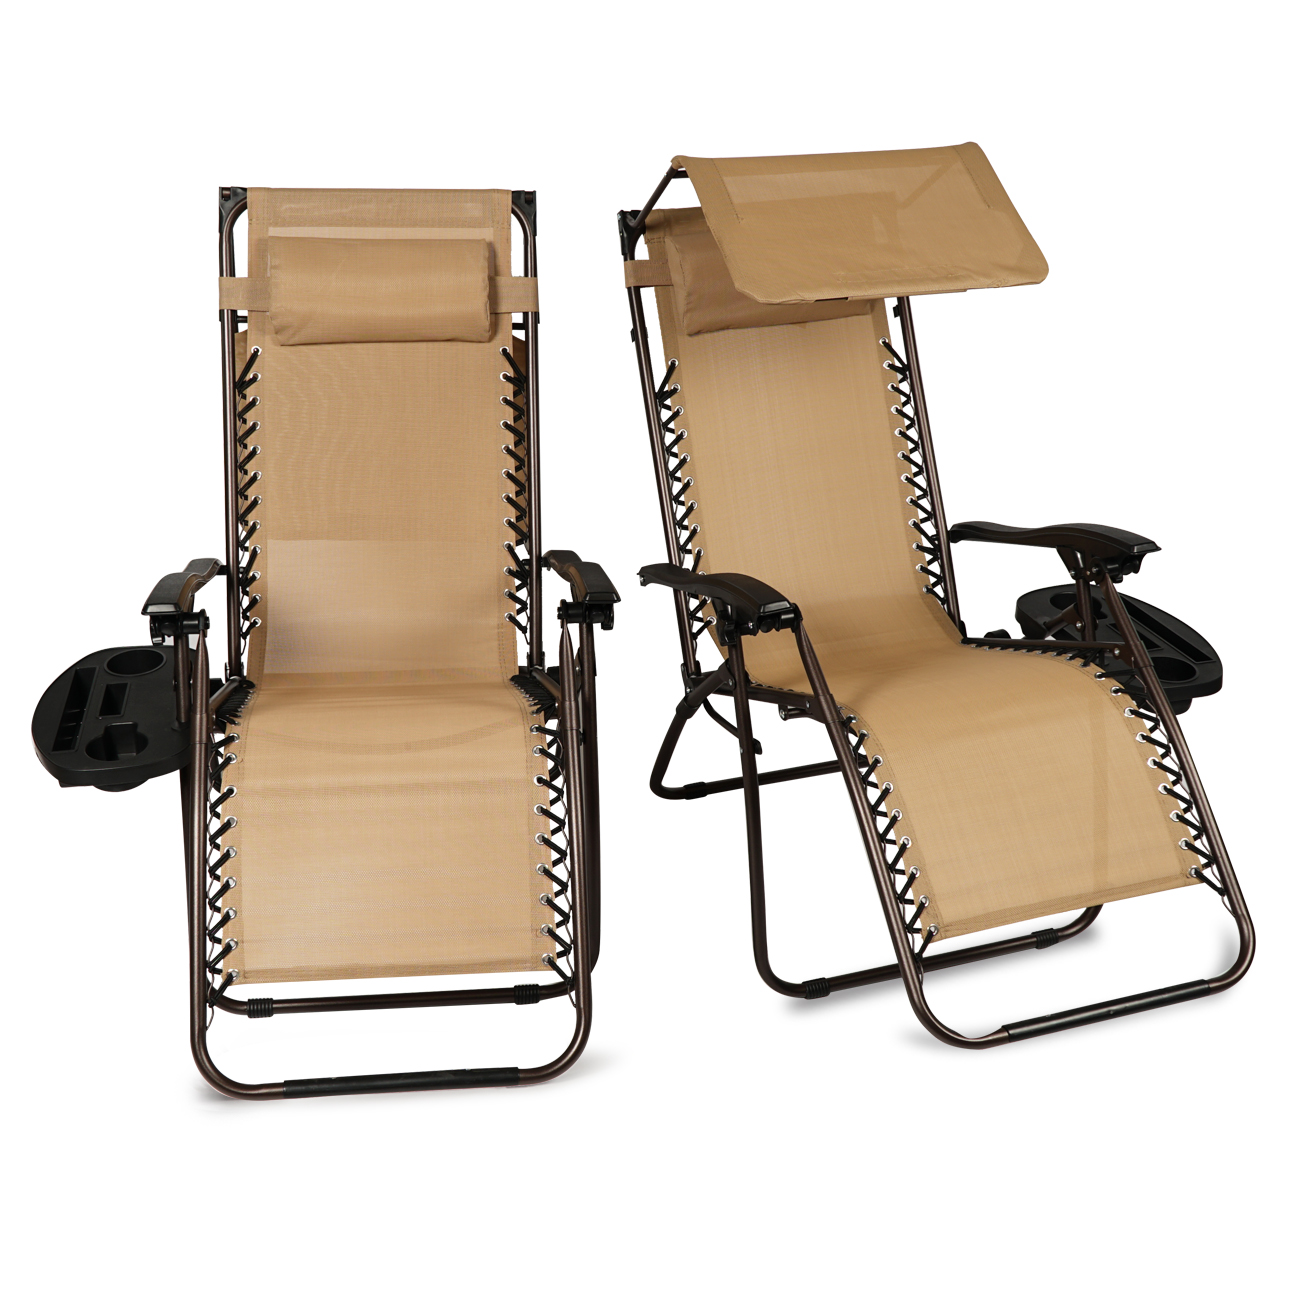 BELLEZE 2 Canopy Top Zero Gravity Chairs Patio Cup Holder Device Slot Outdoor Lounge Reclining Chair UV Beige